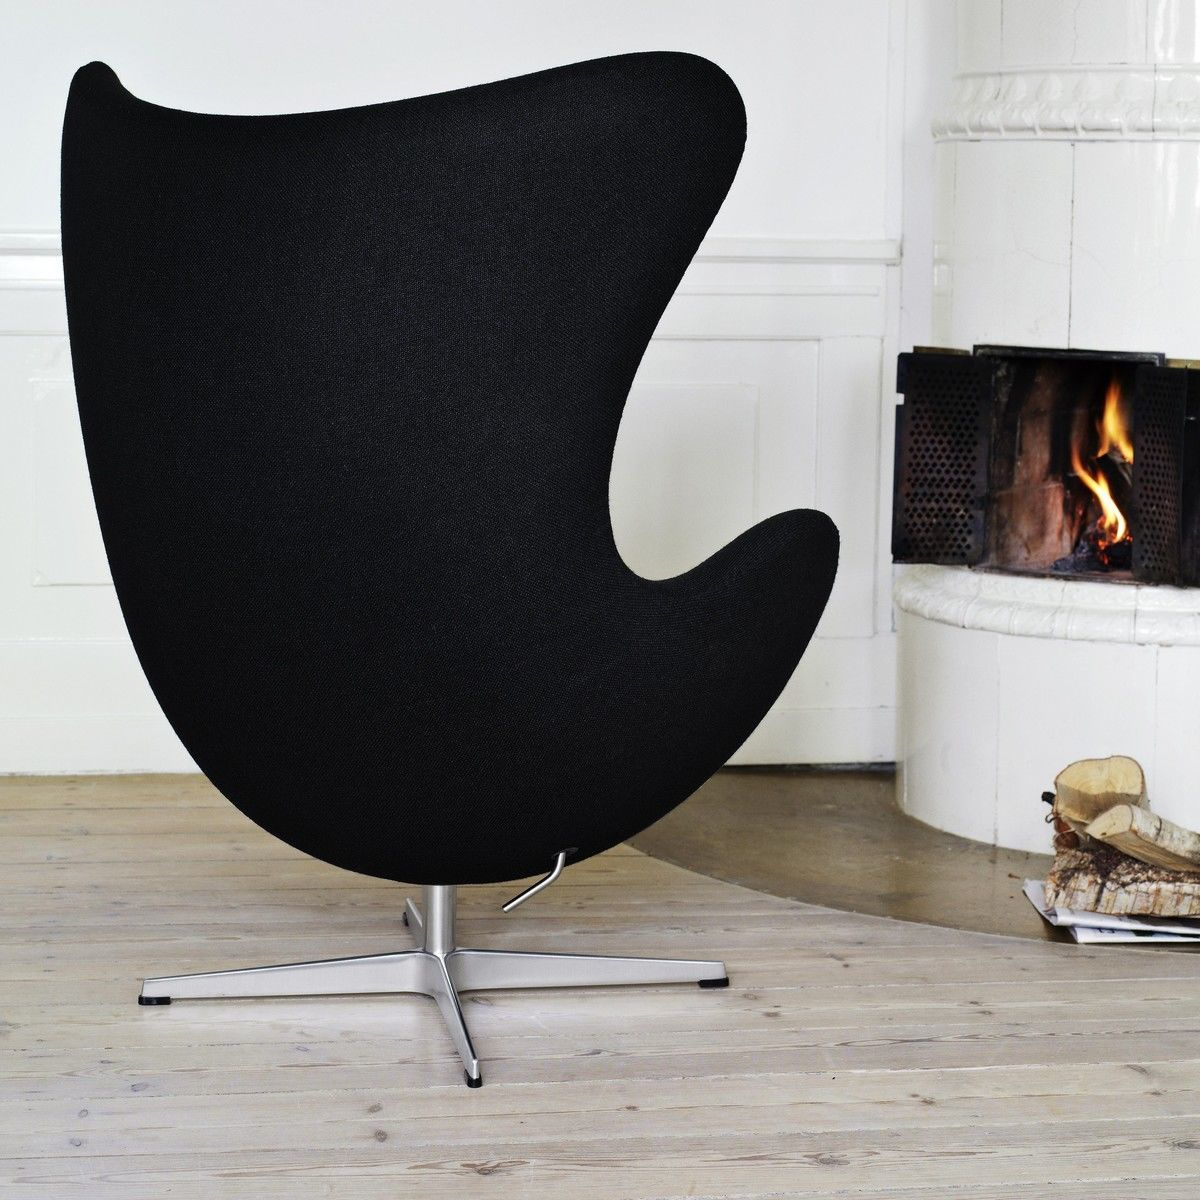 aktion egg chair das ei sessel hocker stoff fritz hansen. Black Bedroom Furniture Sets. Home Design Ideas